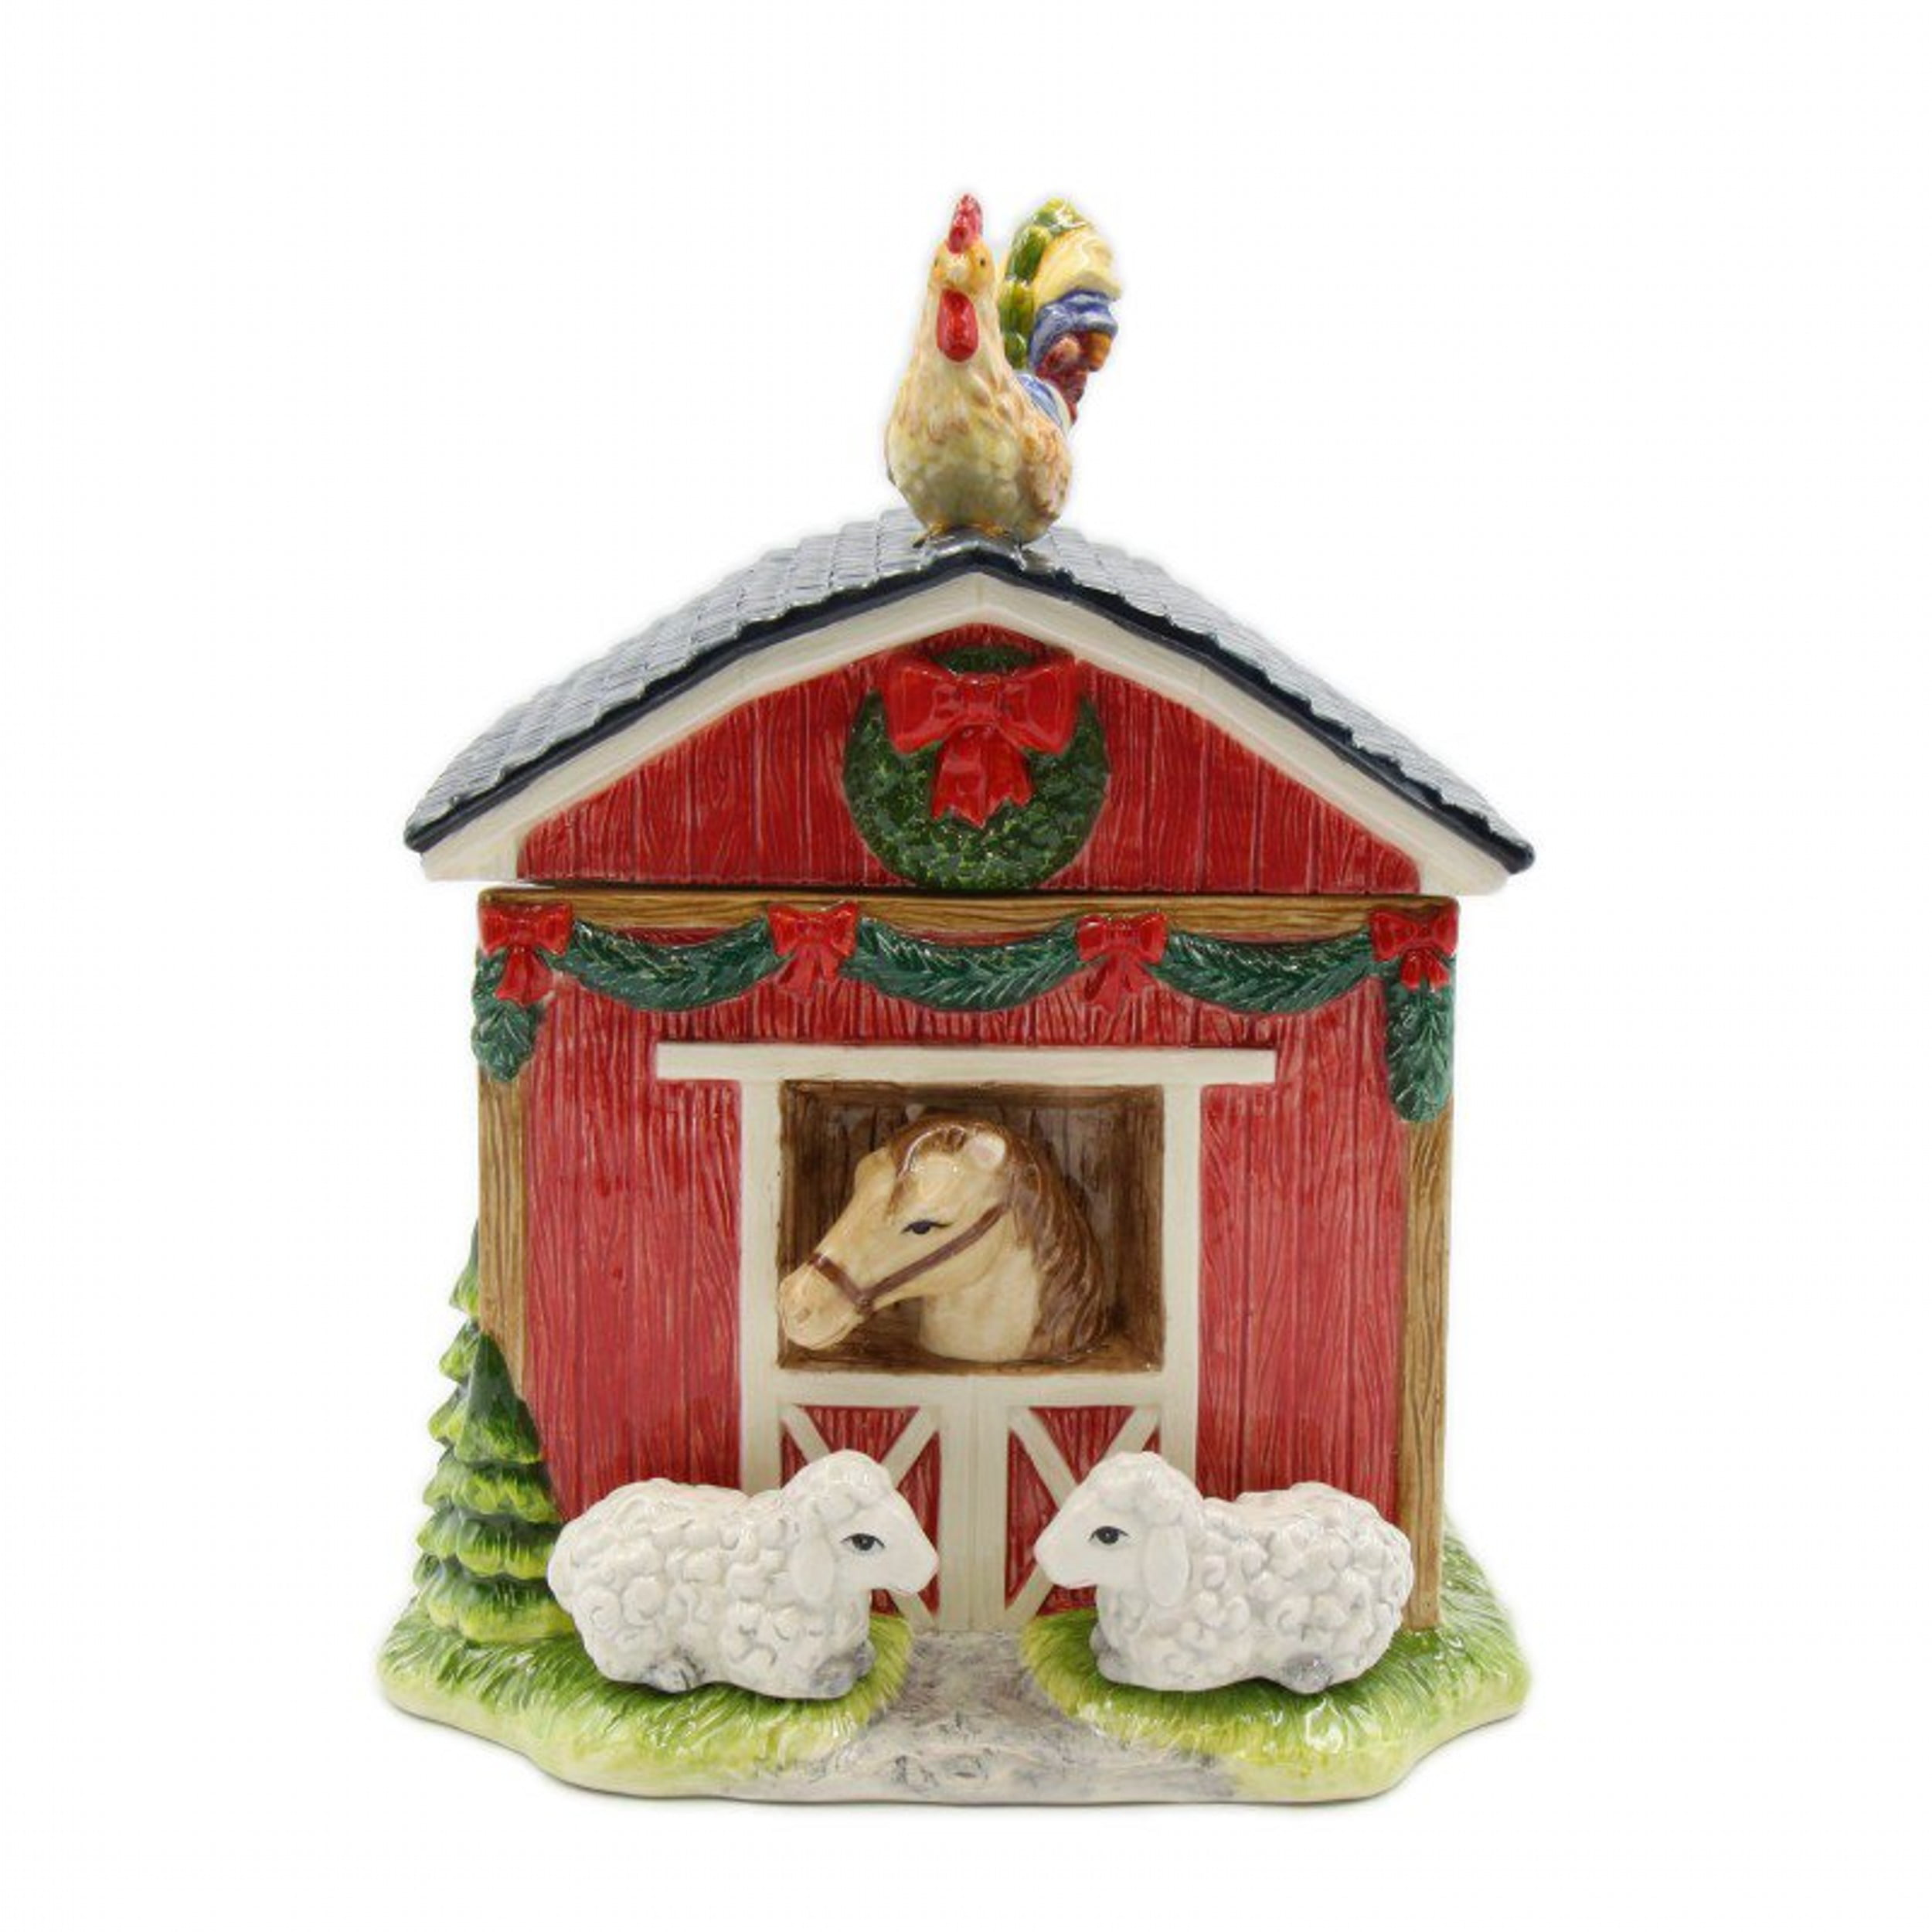 Barn House Cookie Jar by Cosmos Gifts Corp.